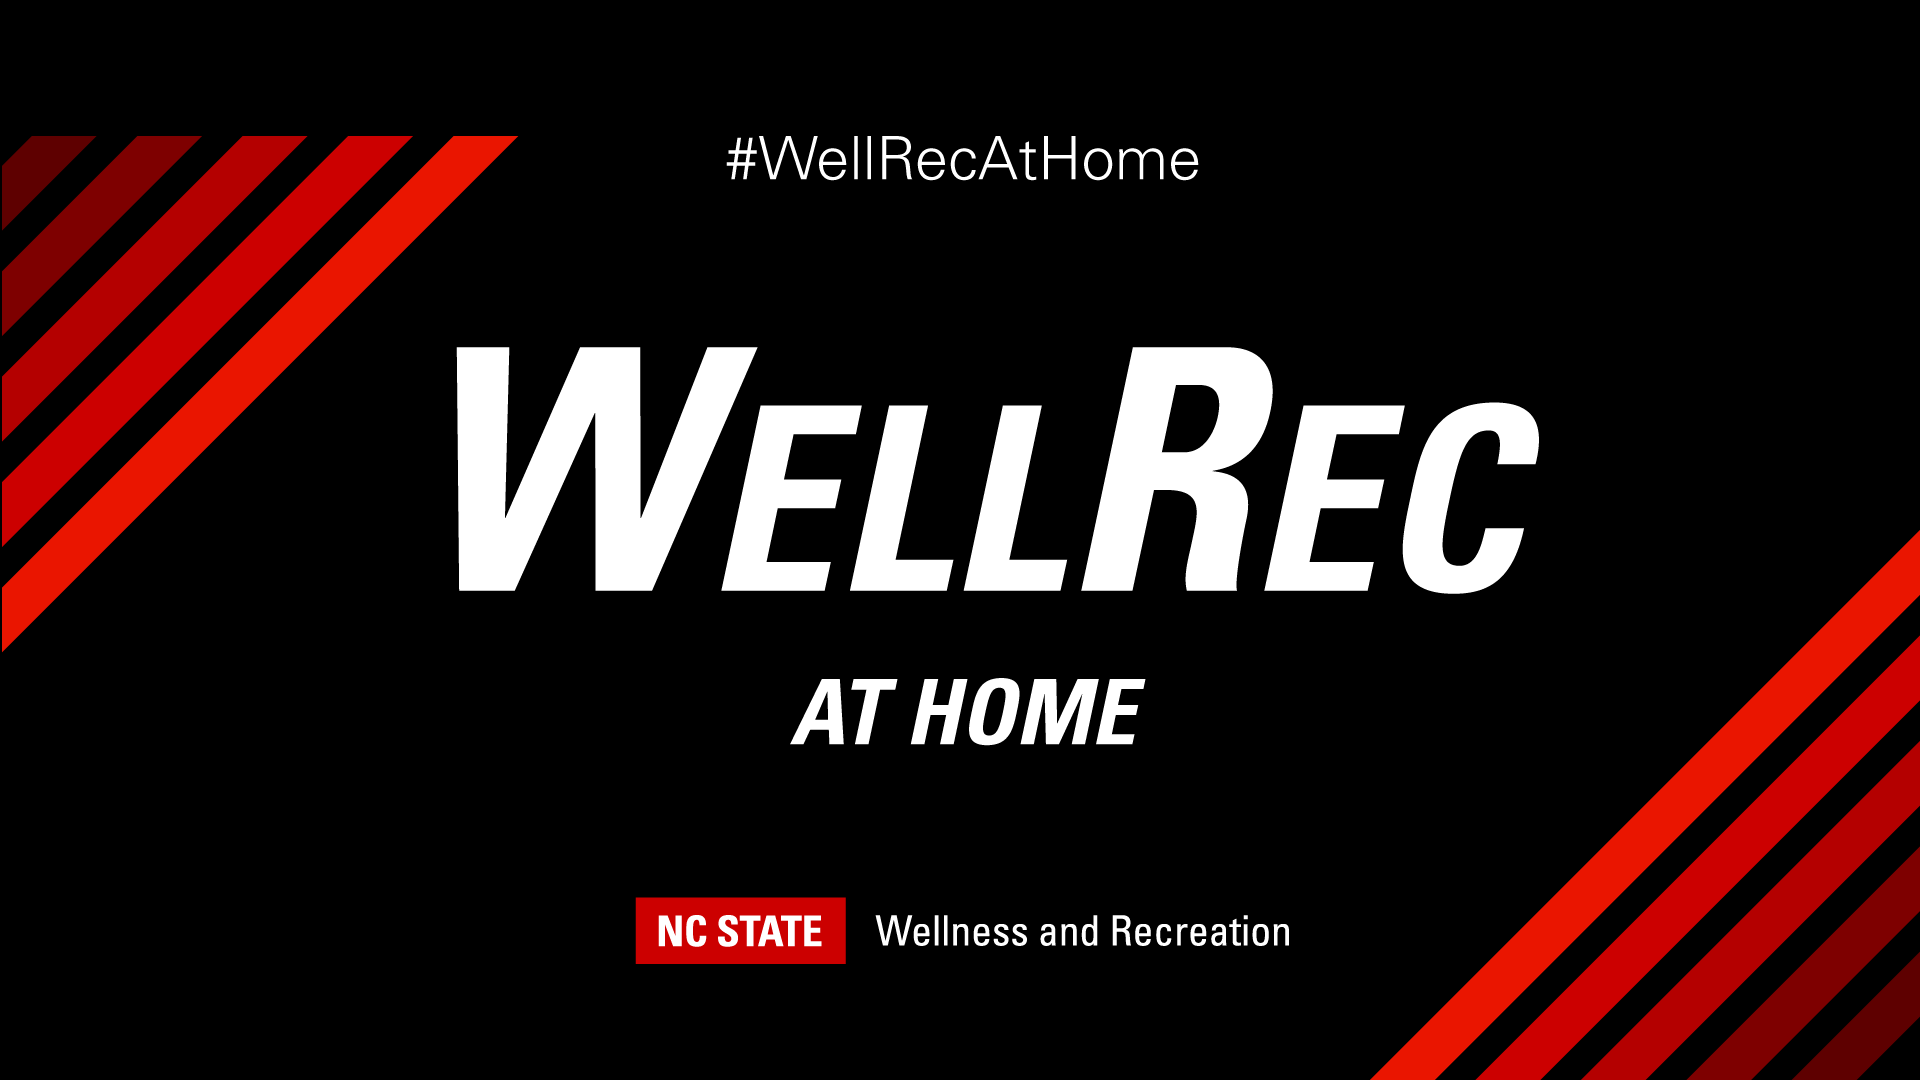 Wellness and Recreation at Home